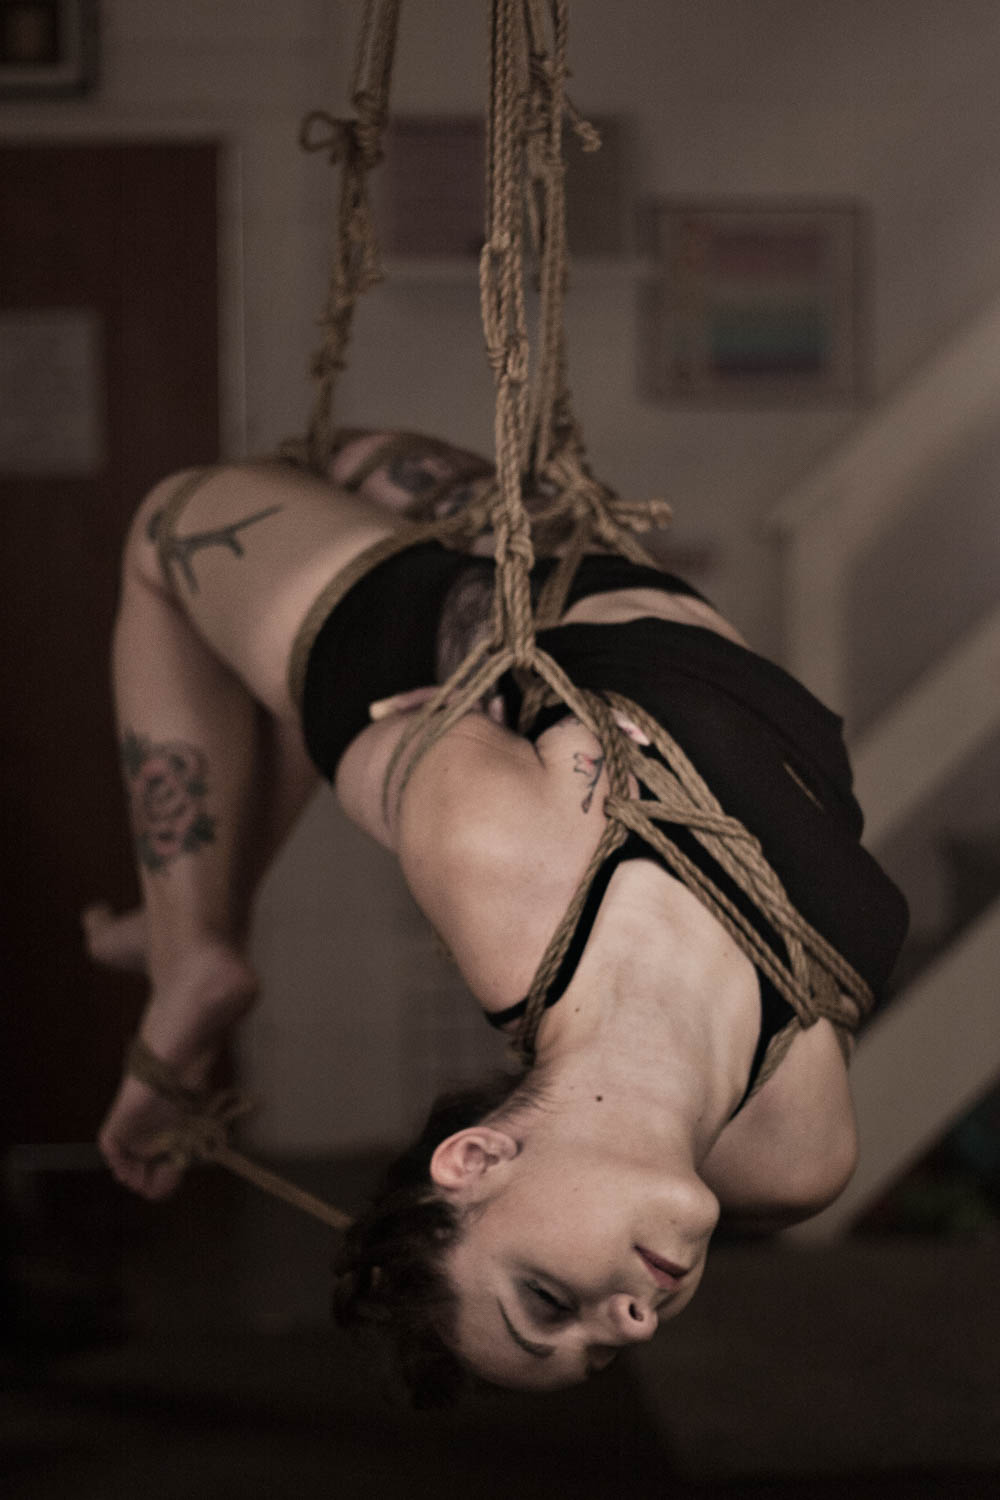 shibari and photography by Gestalta, model clementine